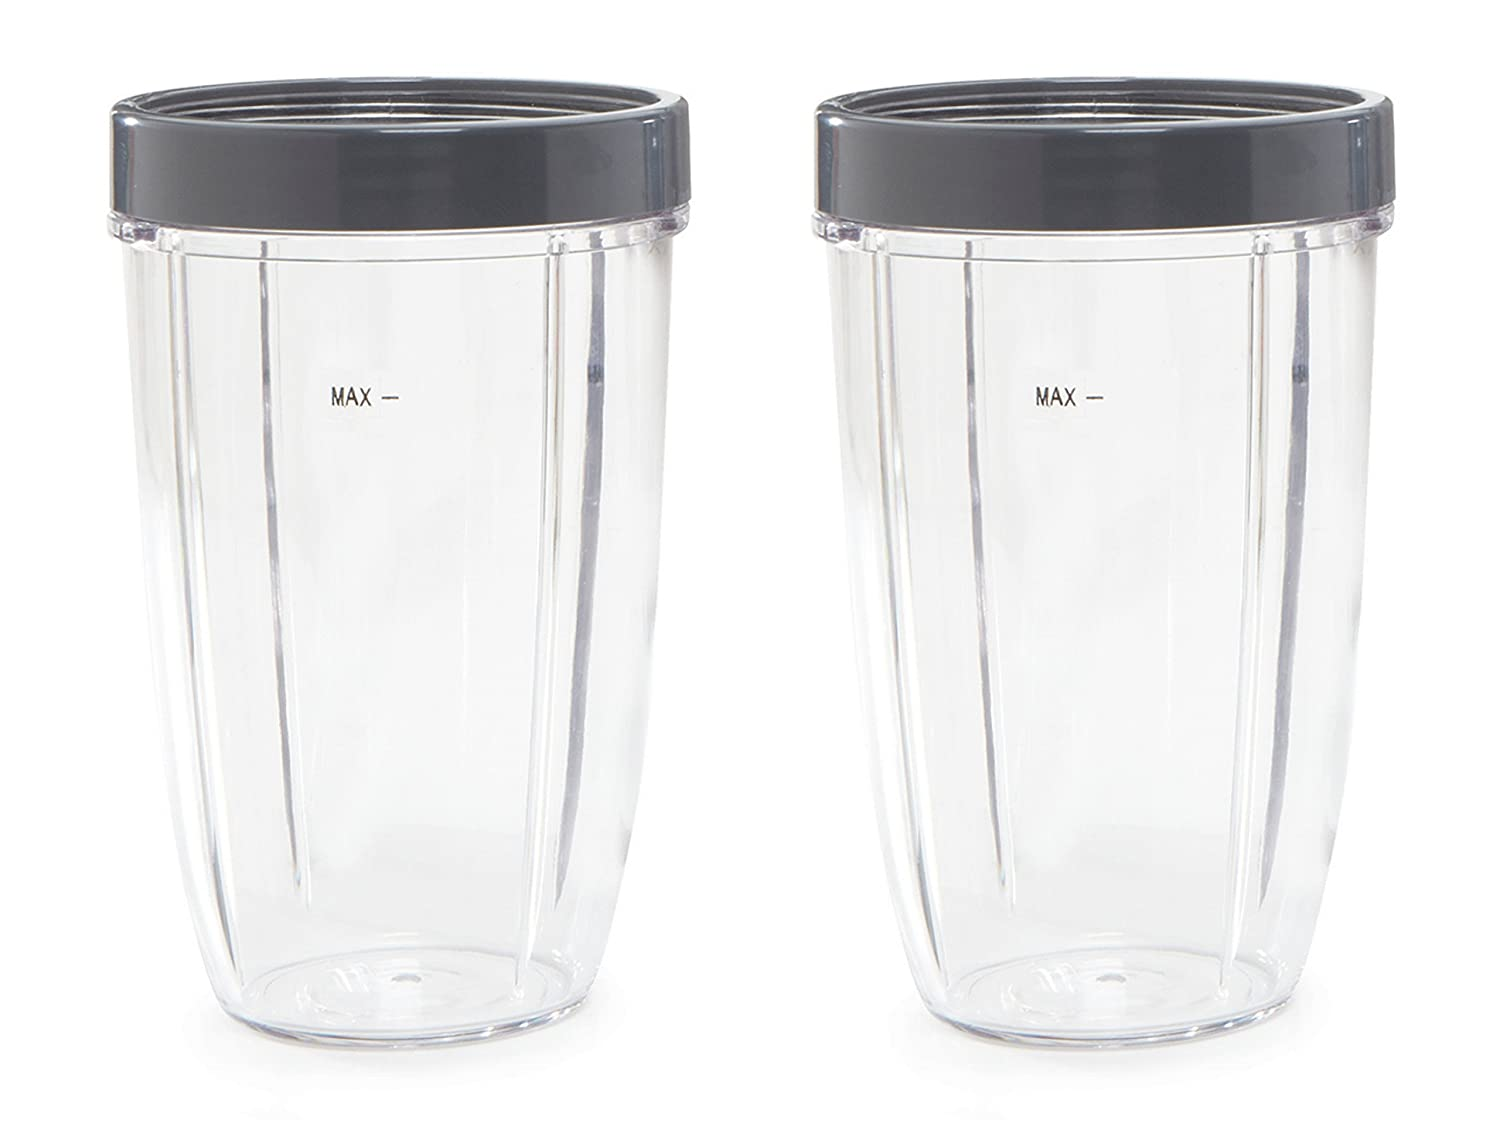 24 oz NutriBullet Replacement Cups with Screw off Lip Ring   Compatible with NutriBullet 600w and Pro 900 Blenders (Set of 2) by Preferred Parts